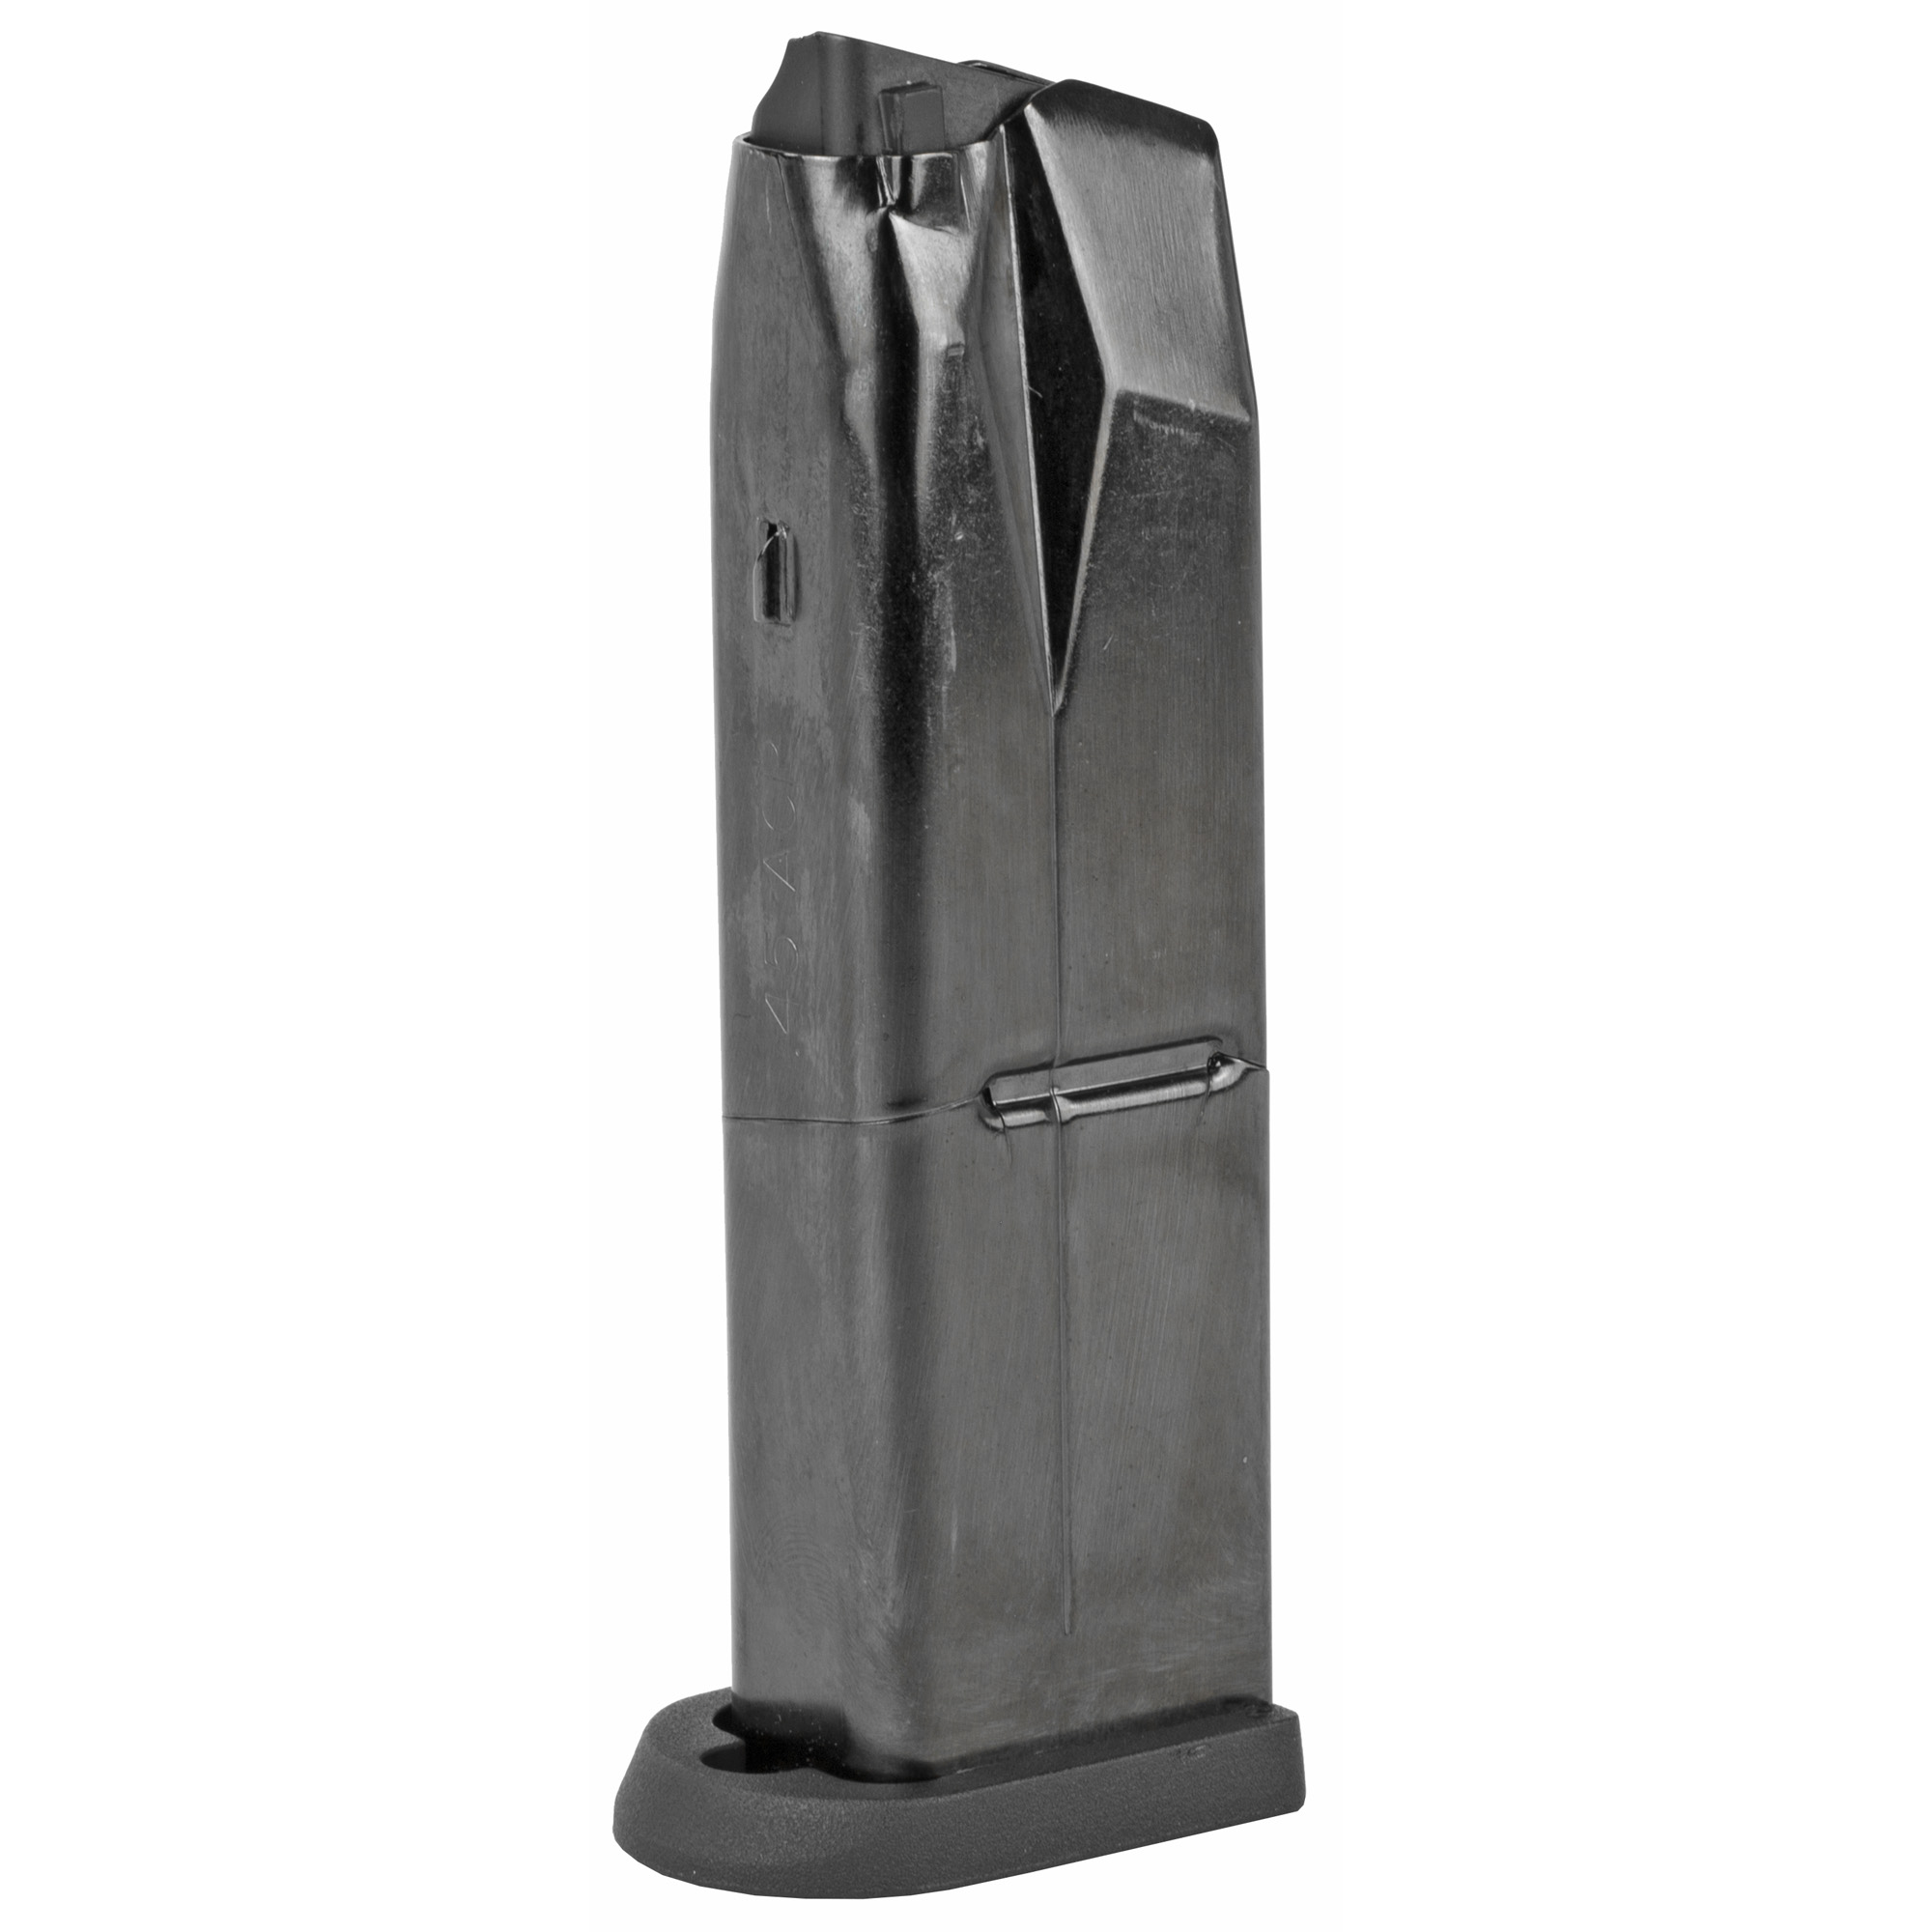 """This magazine is made to FN's specifications and tolerances using high quality materials that provide perfect fit"""" durability and reliability."""